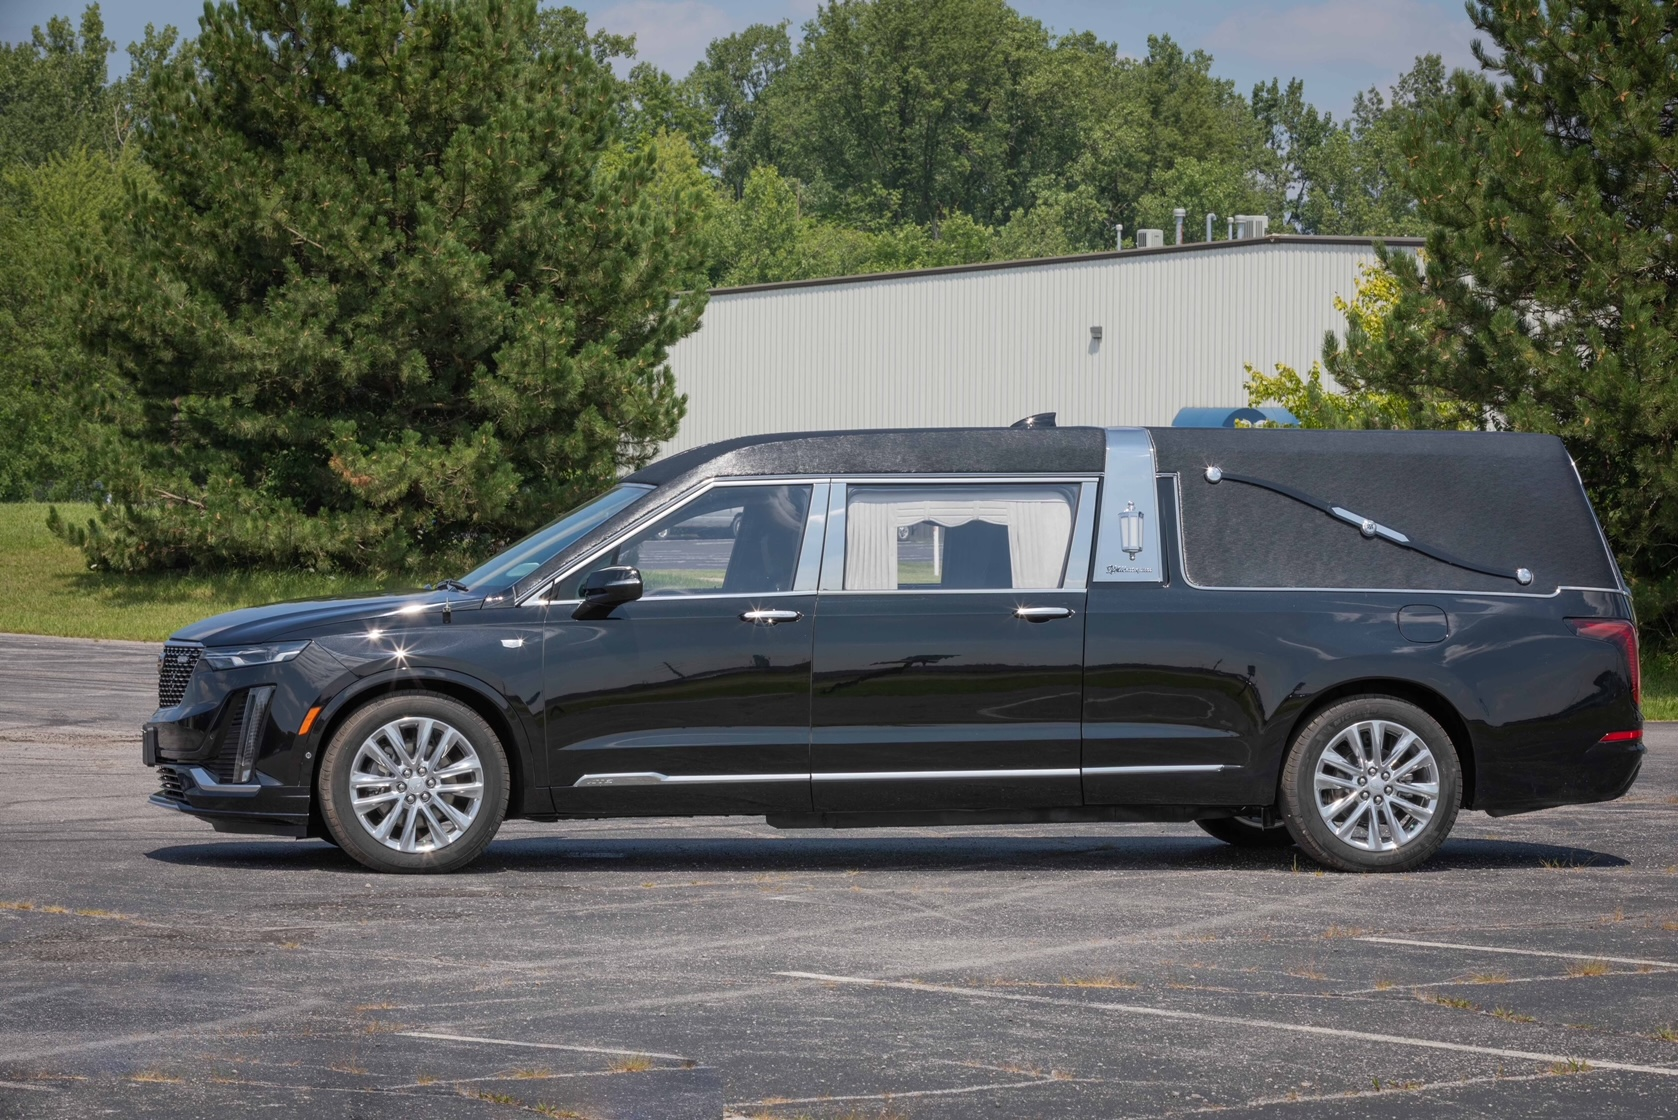 2021 Cadillac S&S Masterpiece Coach Hearse For Sale